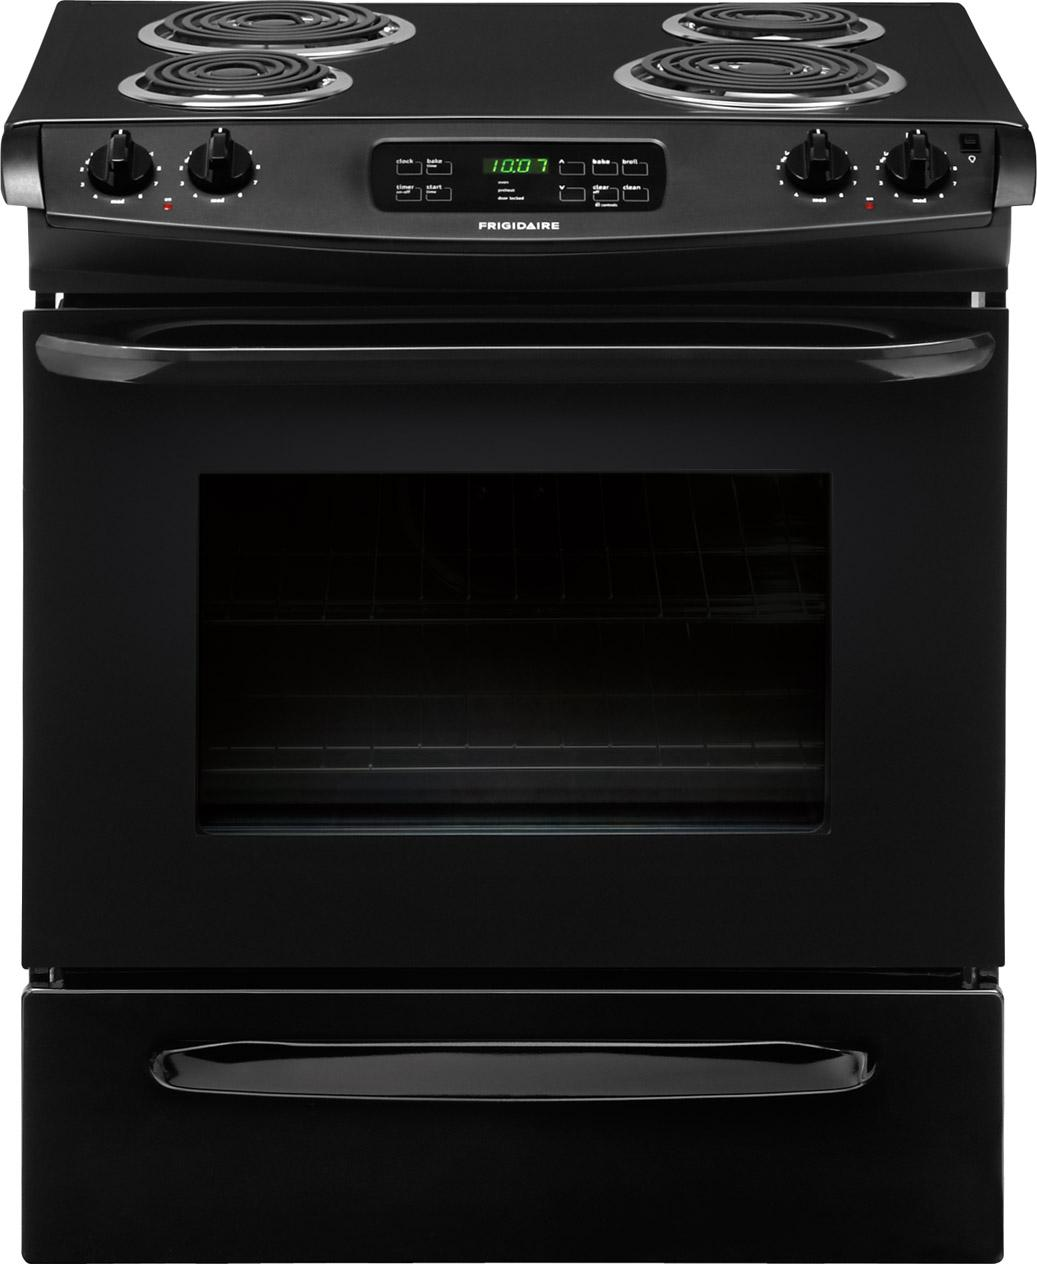 "Frigidaire Electric Range 30"" Slide-In Electric Range - Item Number: FFES3015PB"